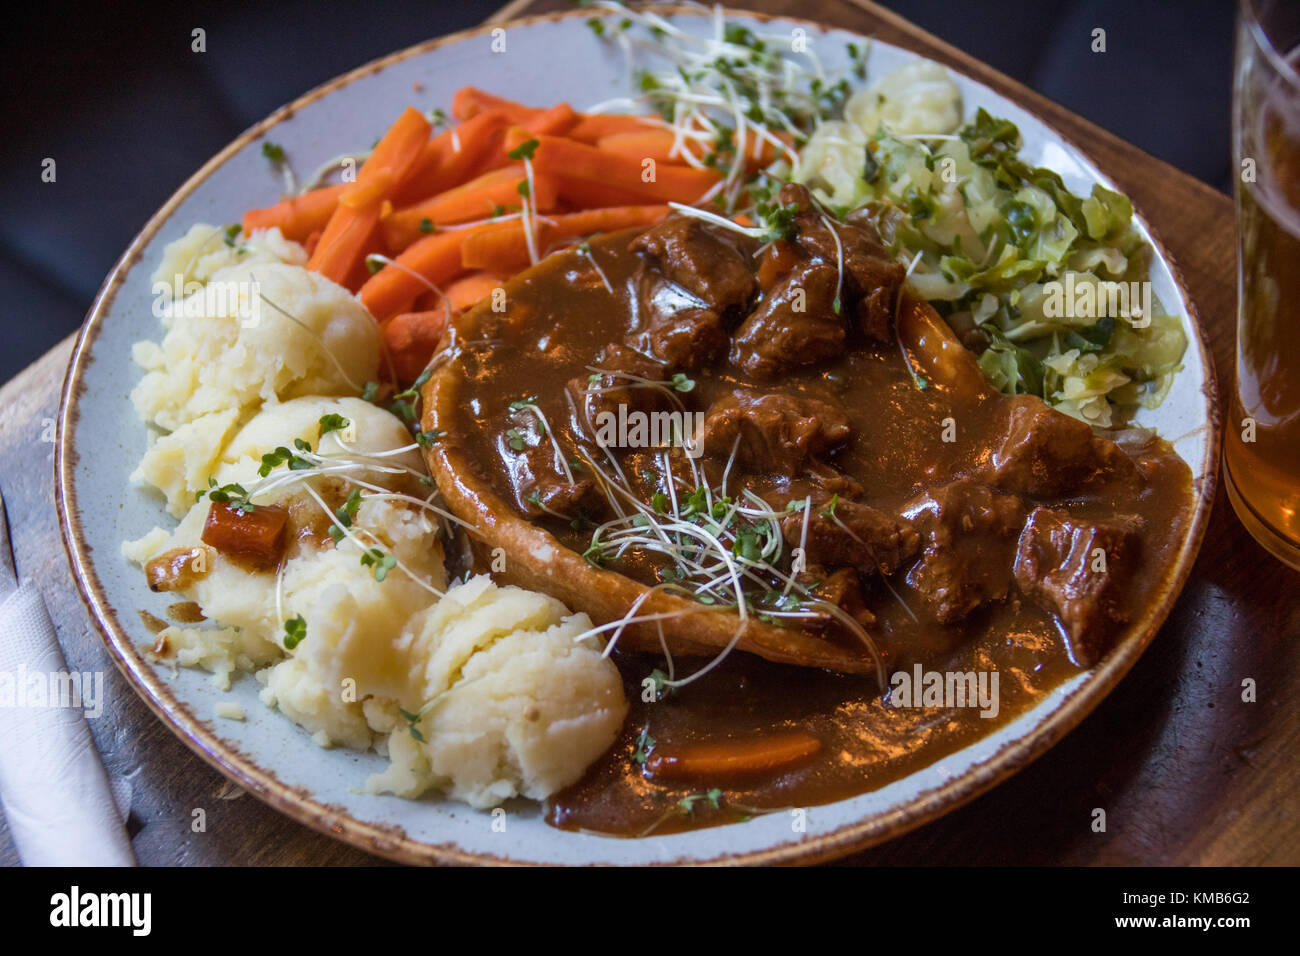 Beef and Guiness Pie at the Long Stone Irish Pub, Dublin, Ireland - Stock Image